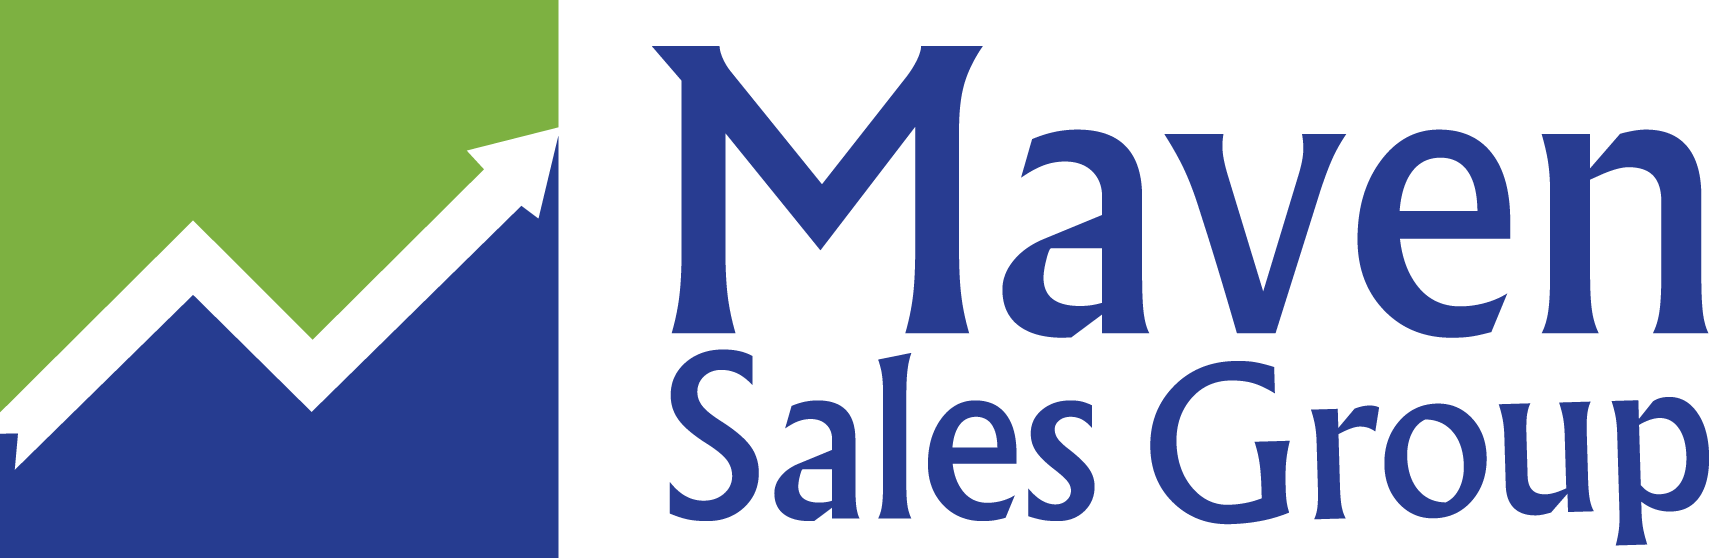 Copy of Maven Sales Group Logo_Horizontal.png